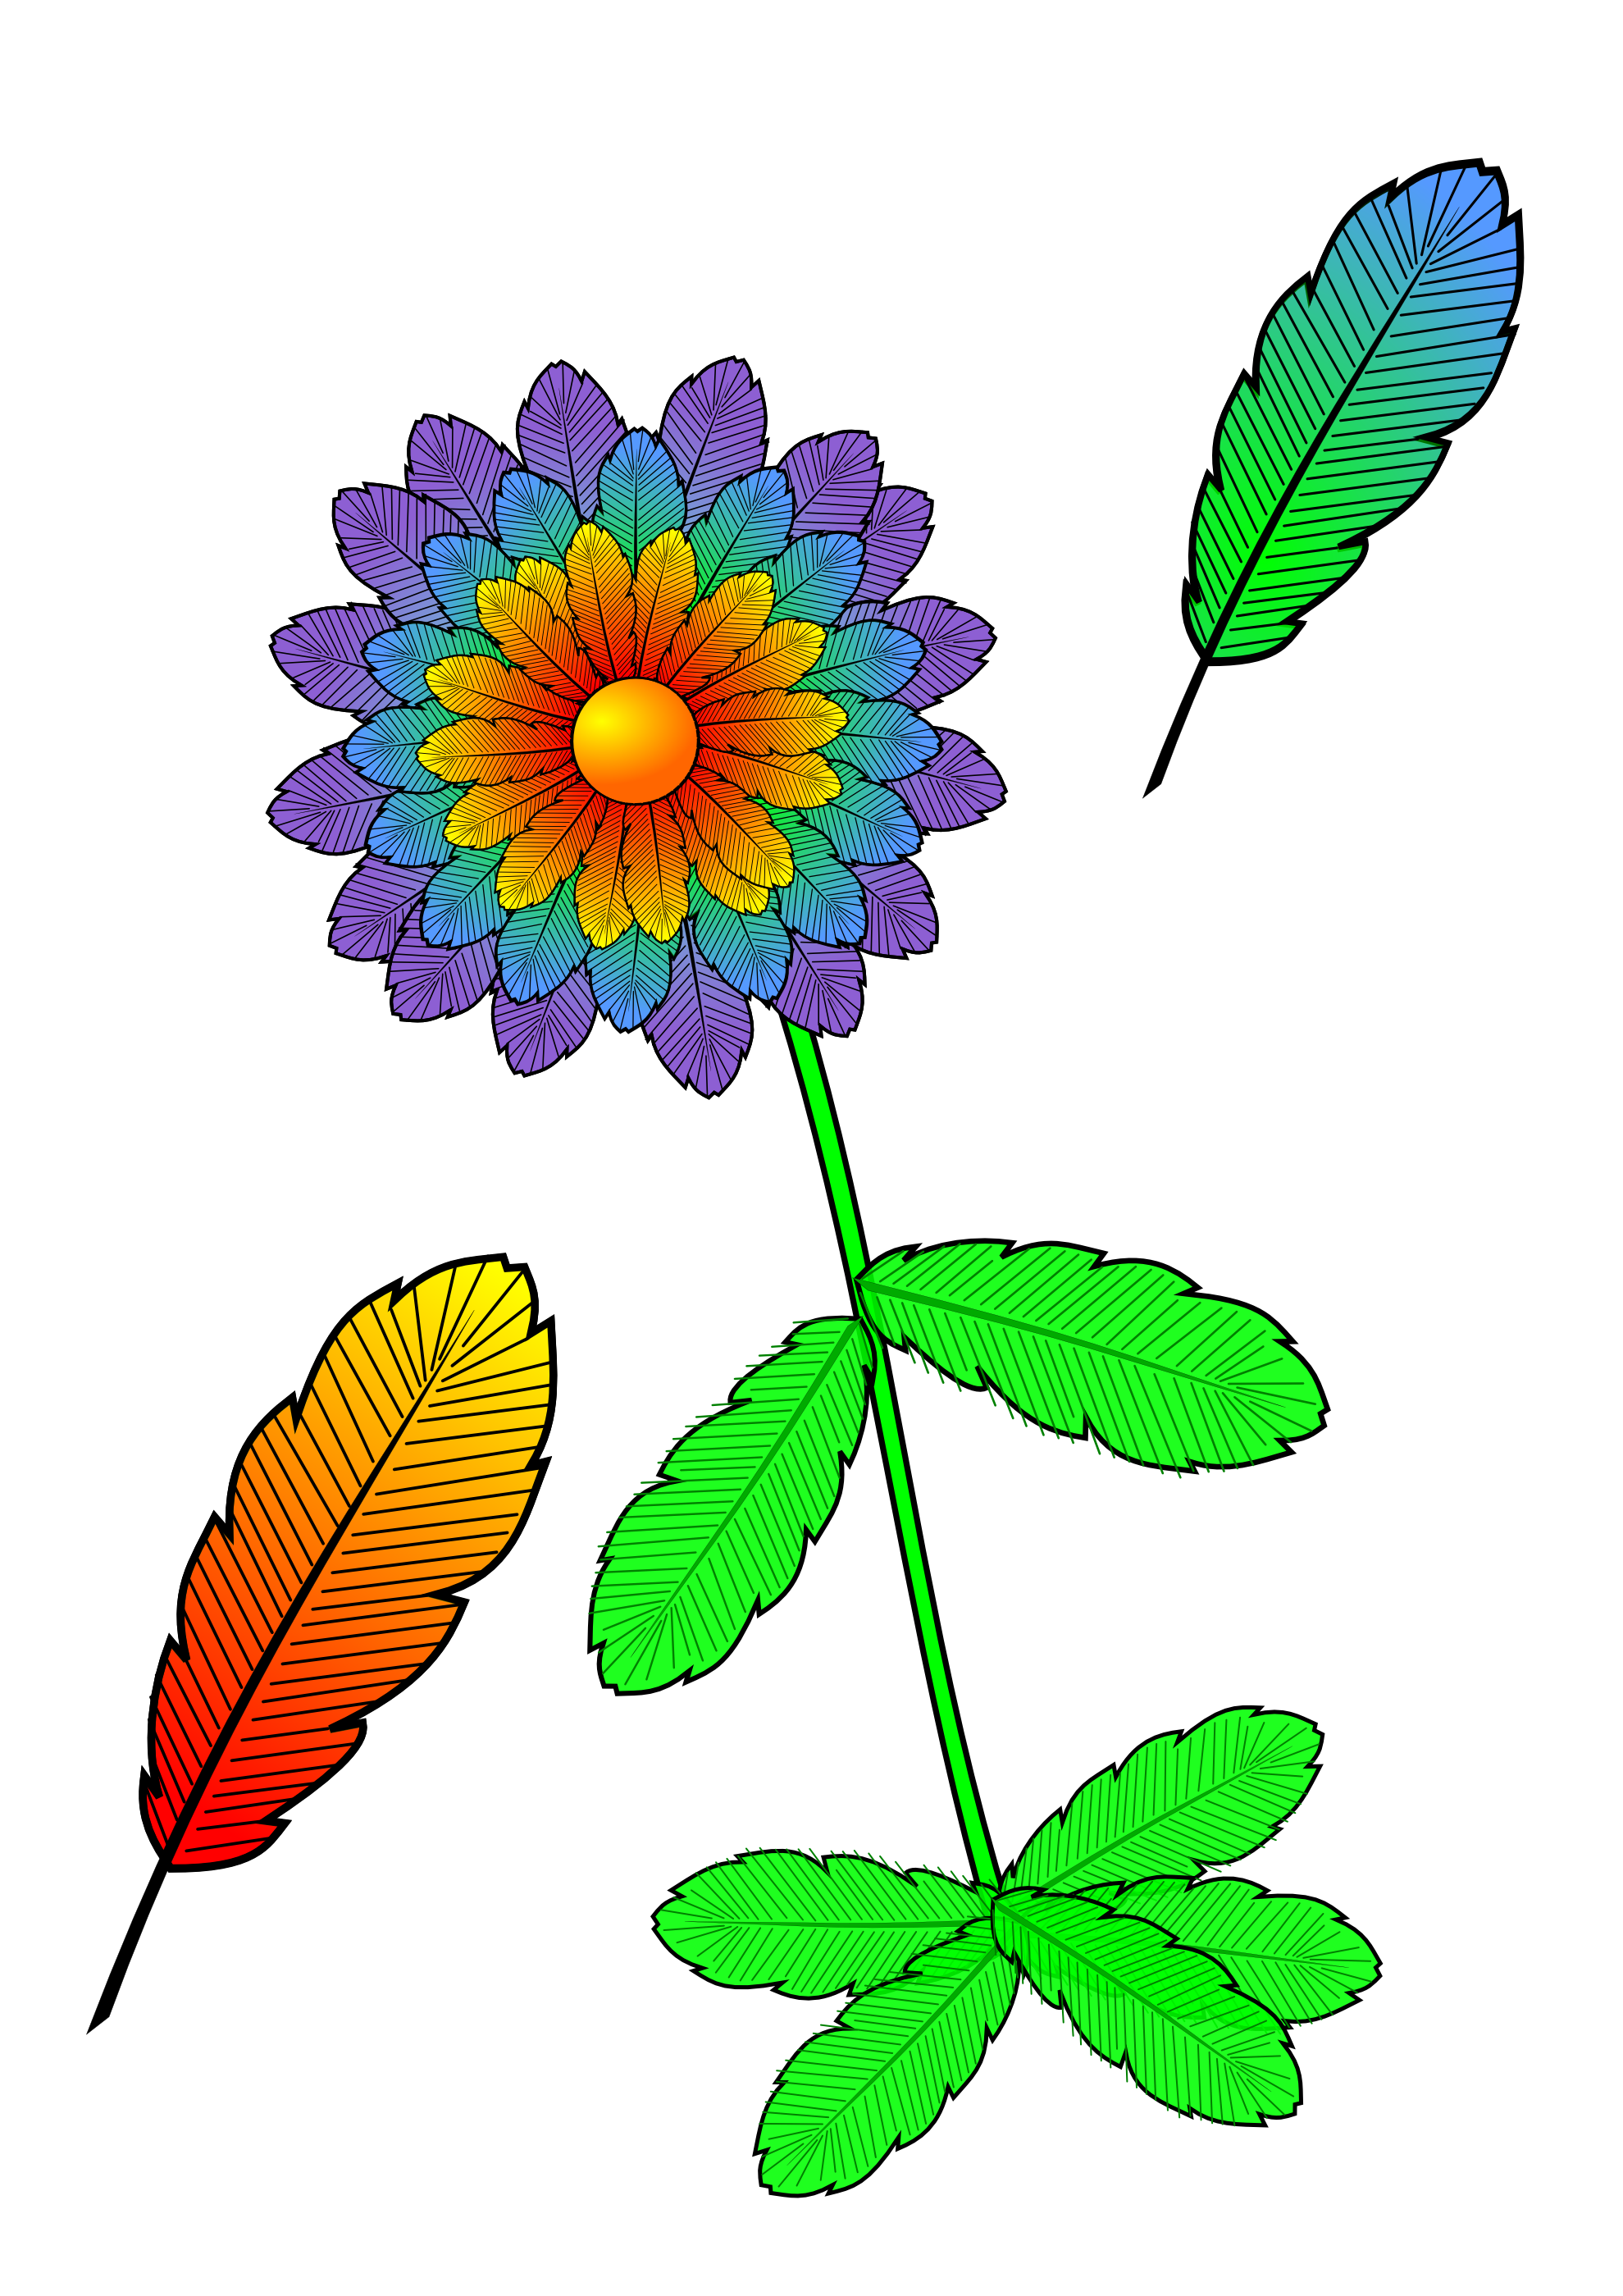 Flower clipart feather. Clipartist net openclipart org